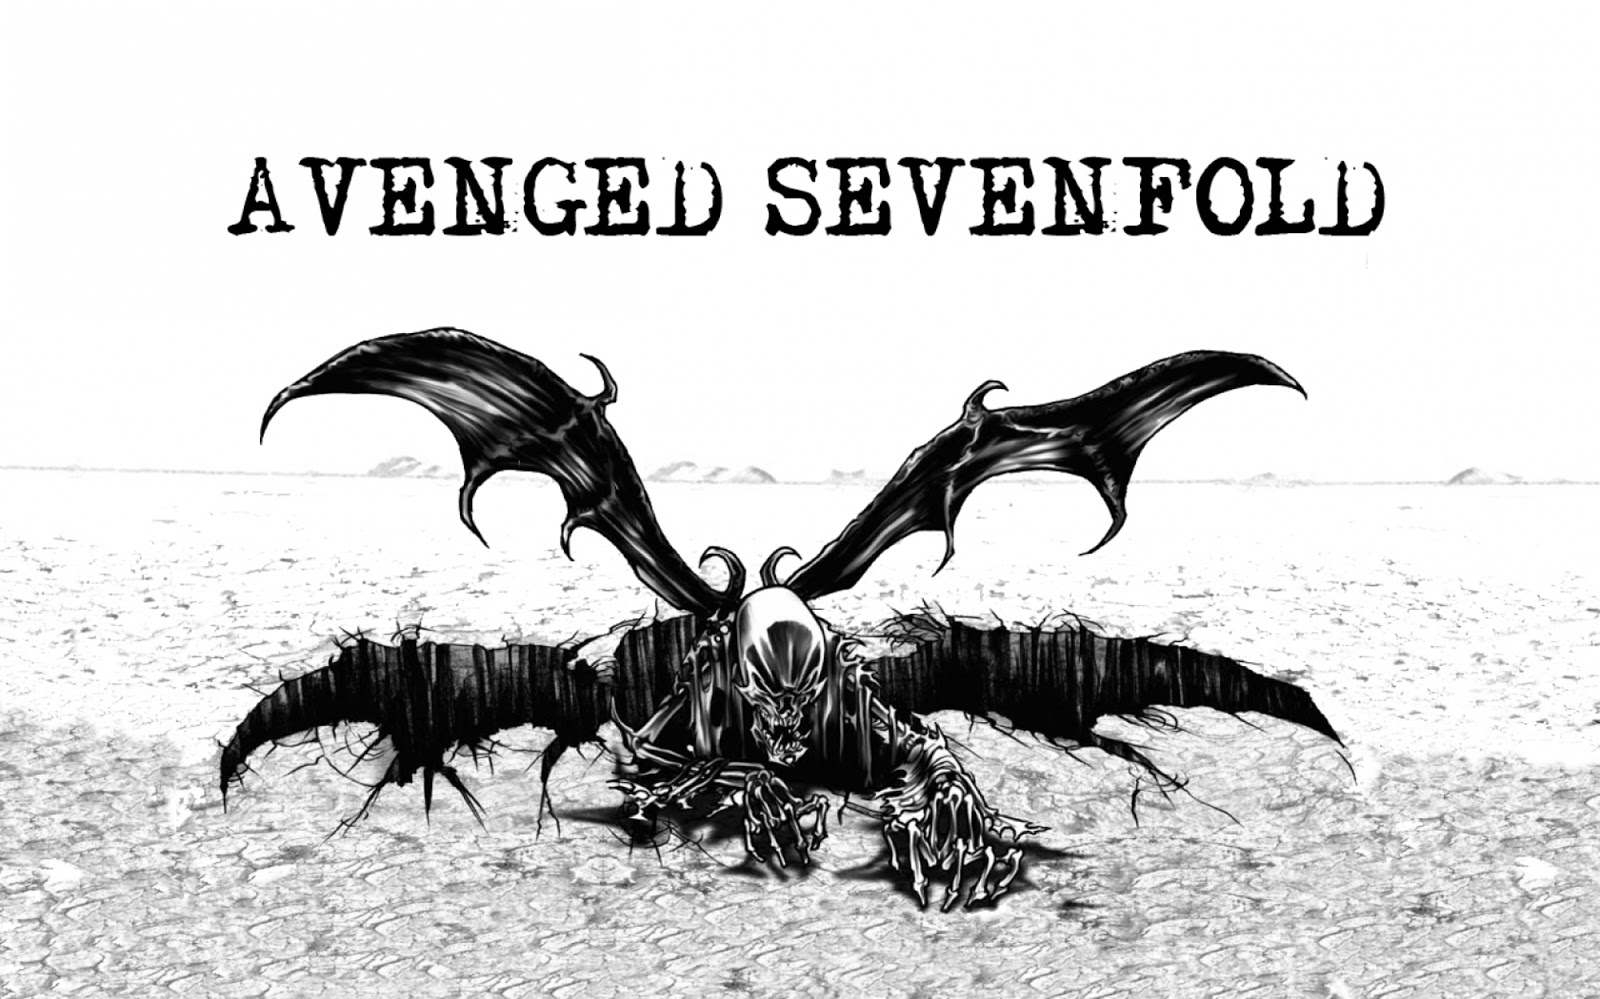 avenged sevenfold wallpaper,fictional character,wing,bat,claw,vulture